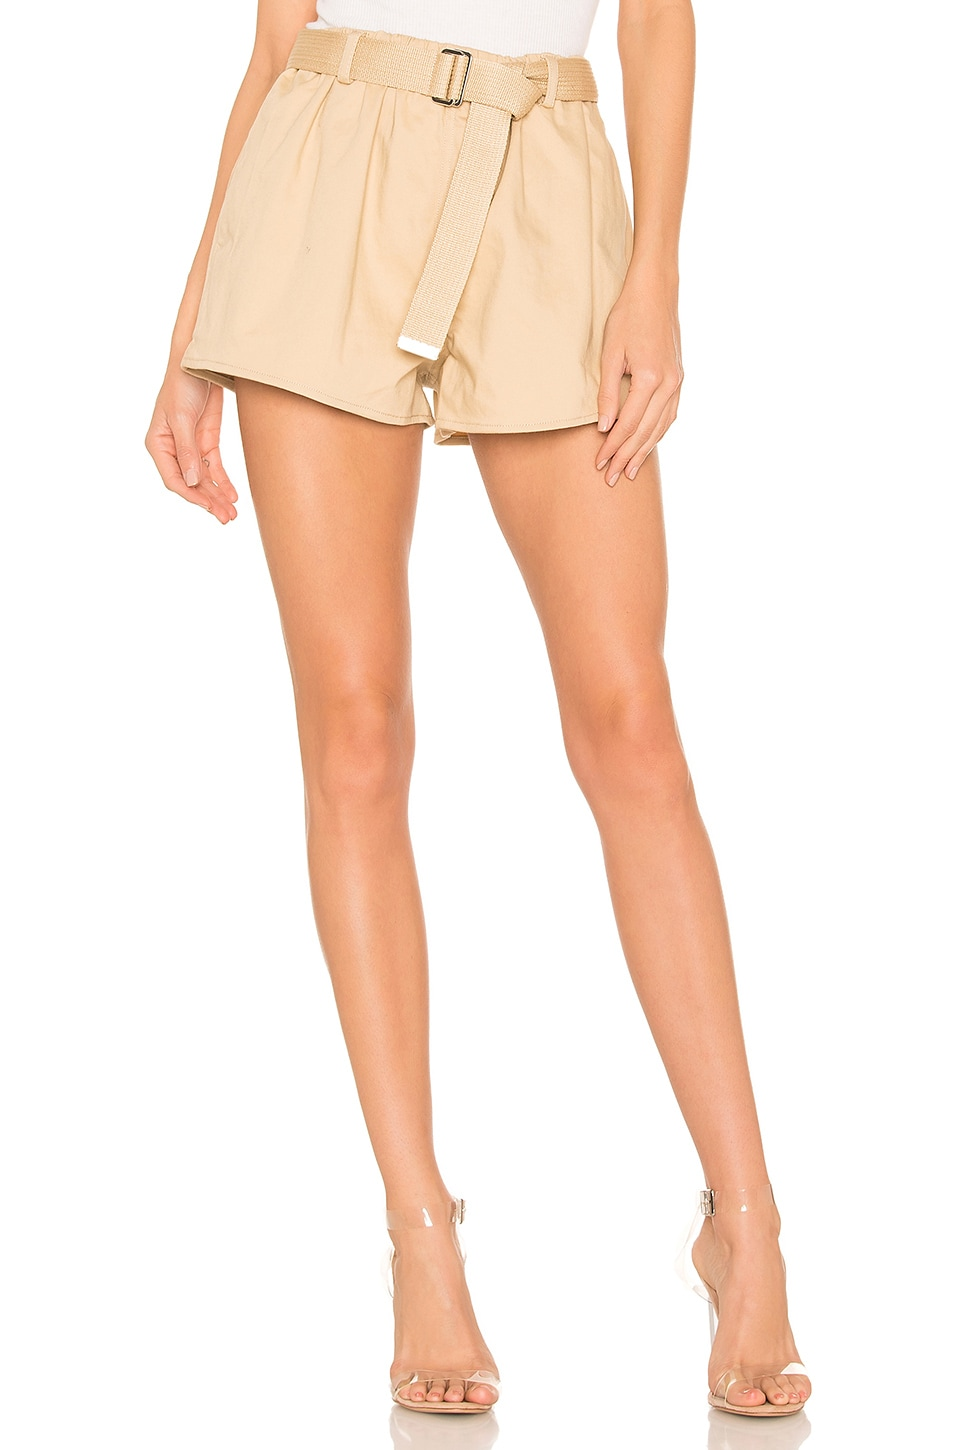 L'Academie The Ava Short in Beige